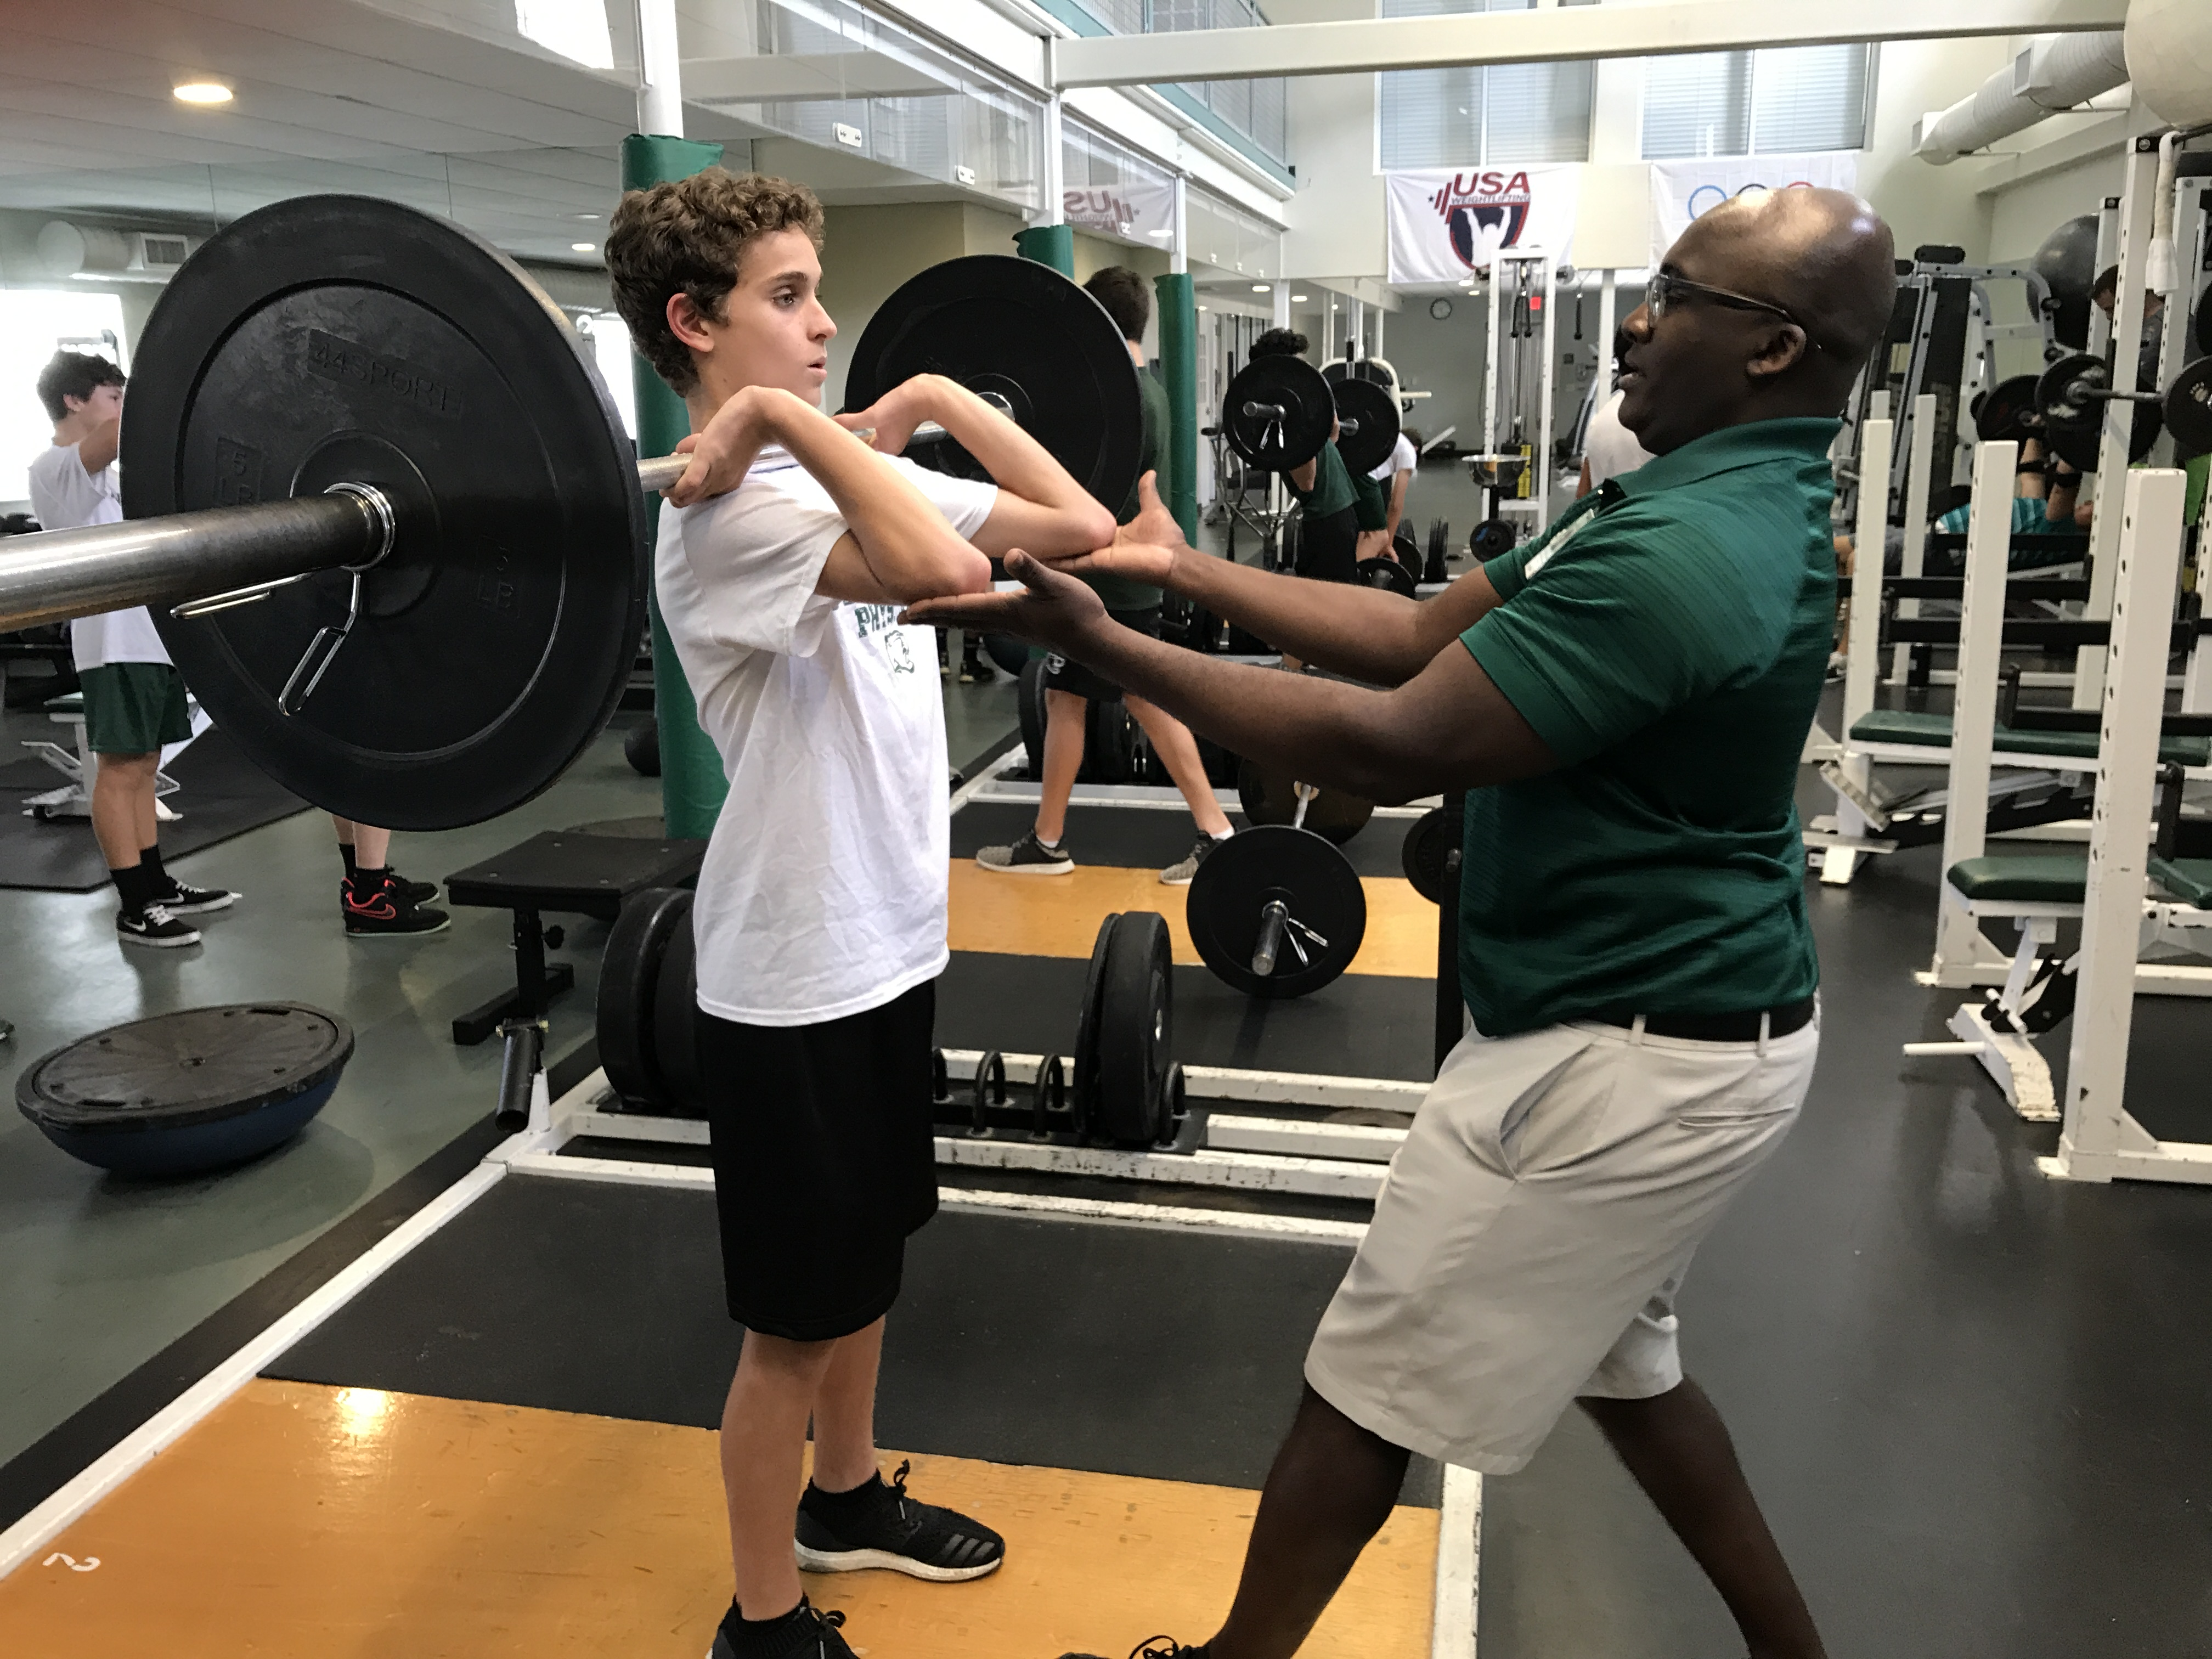 Middle School strength training